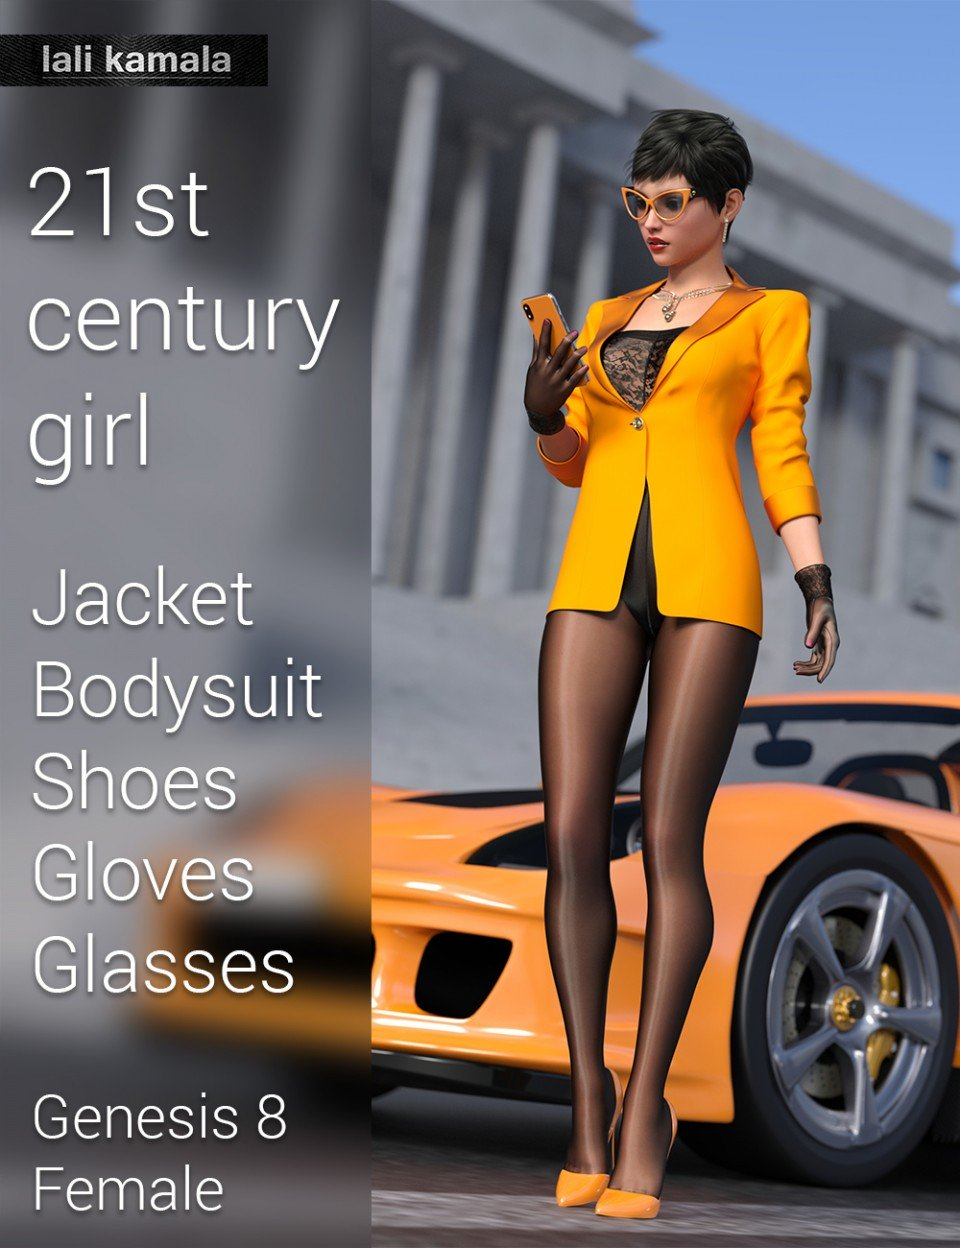 21st Century Girl Outfit for Genesis 8 Female(s)_DAZ3D下载站